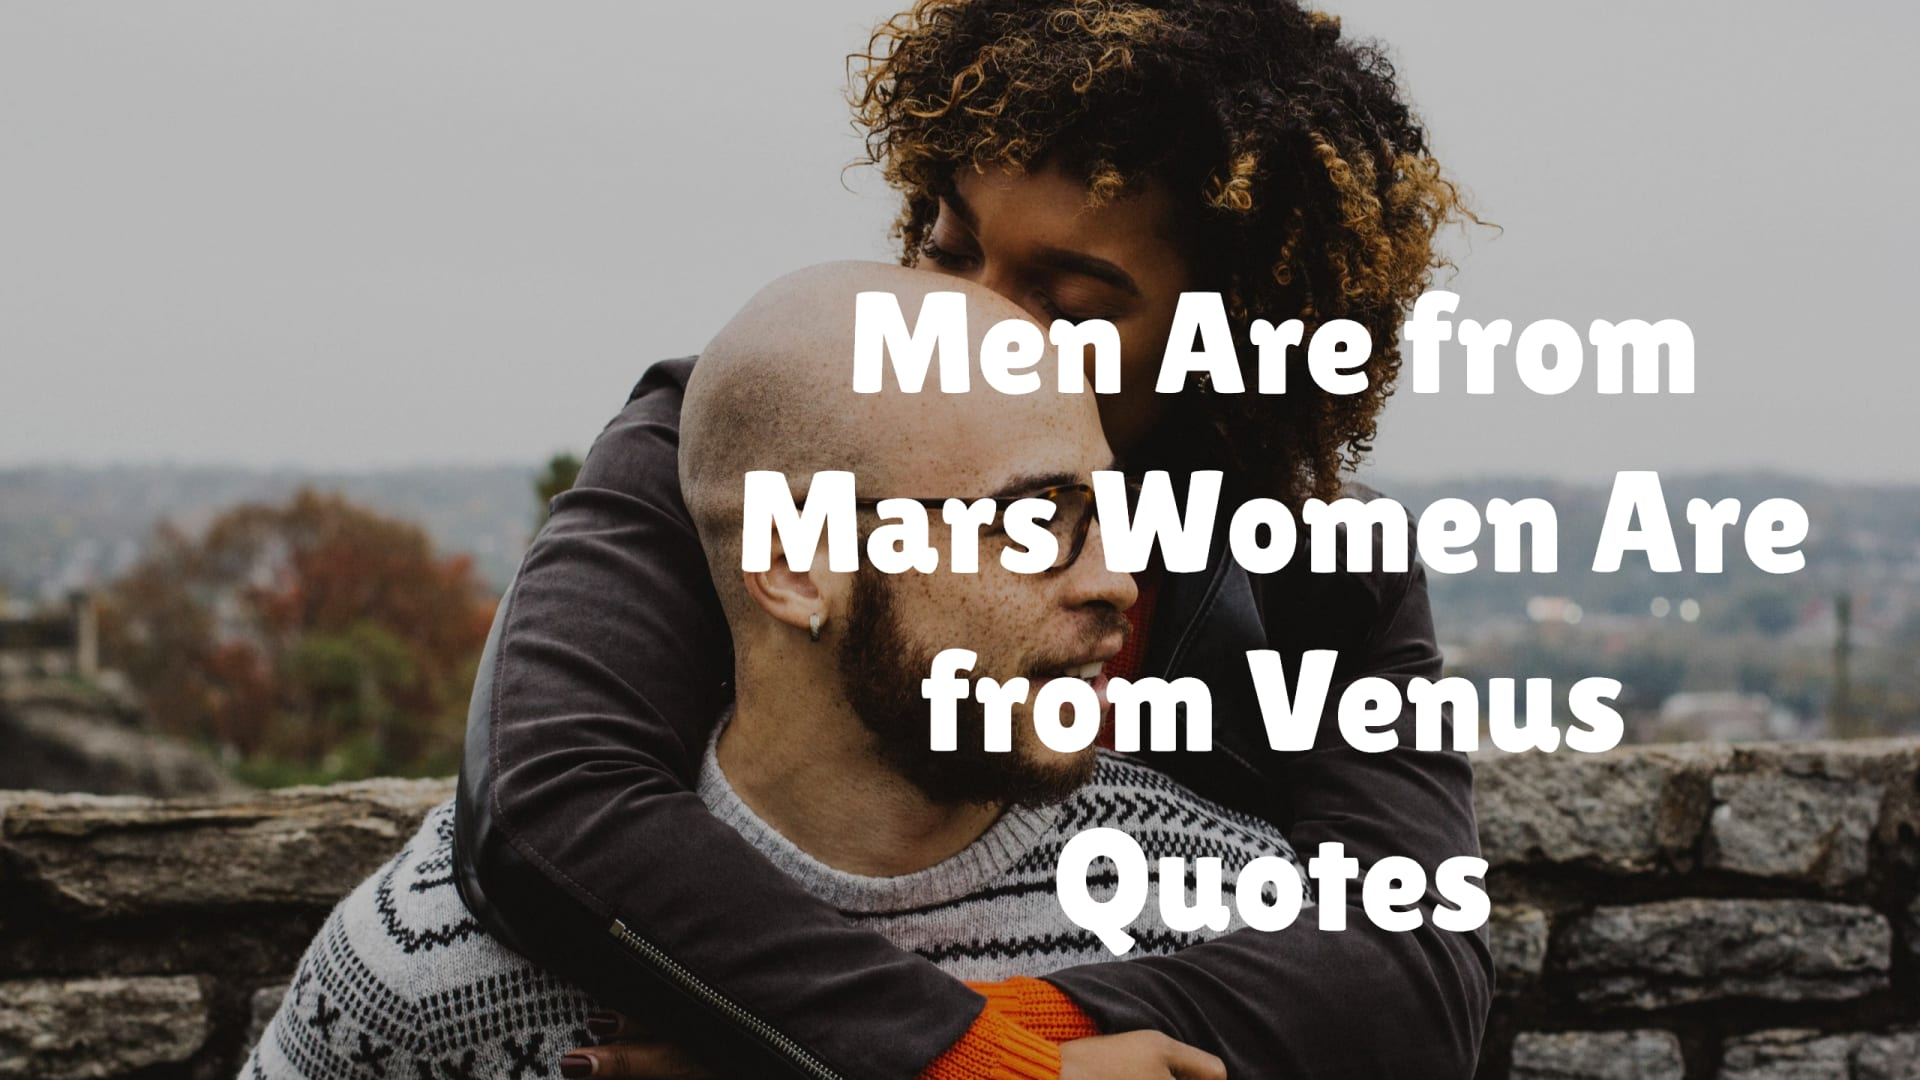 Men Are from Mars Women Are from Venus Quotes